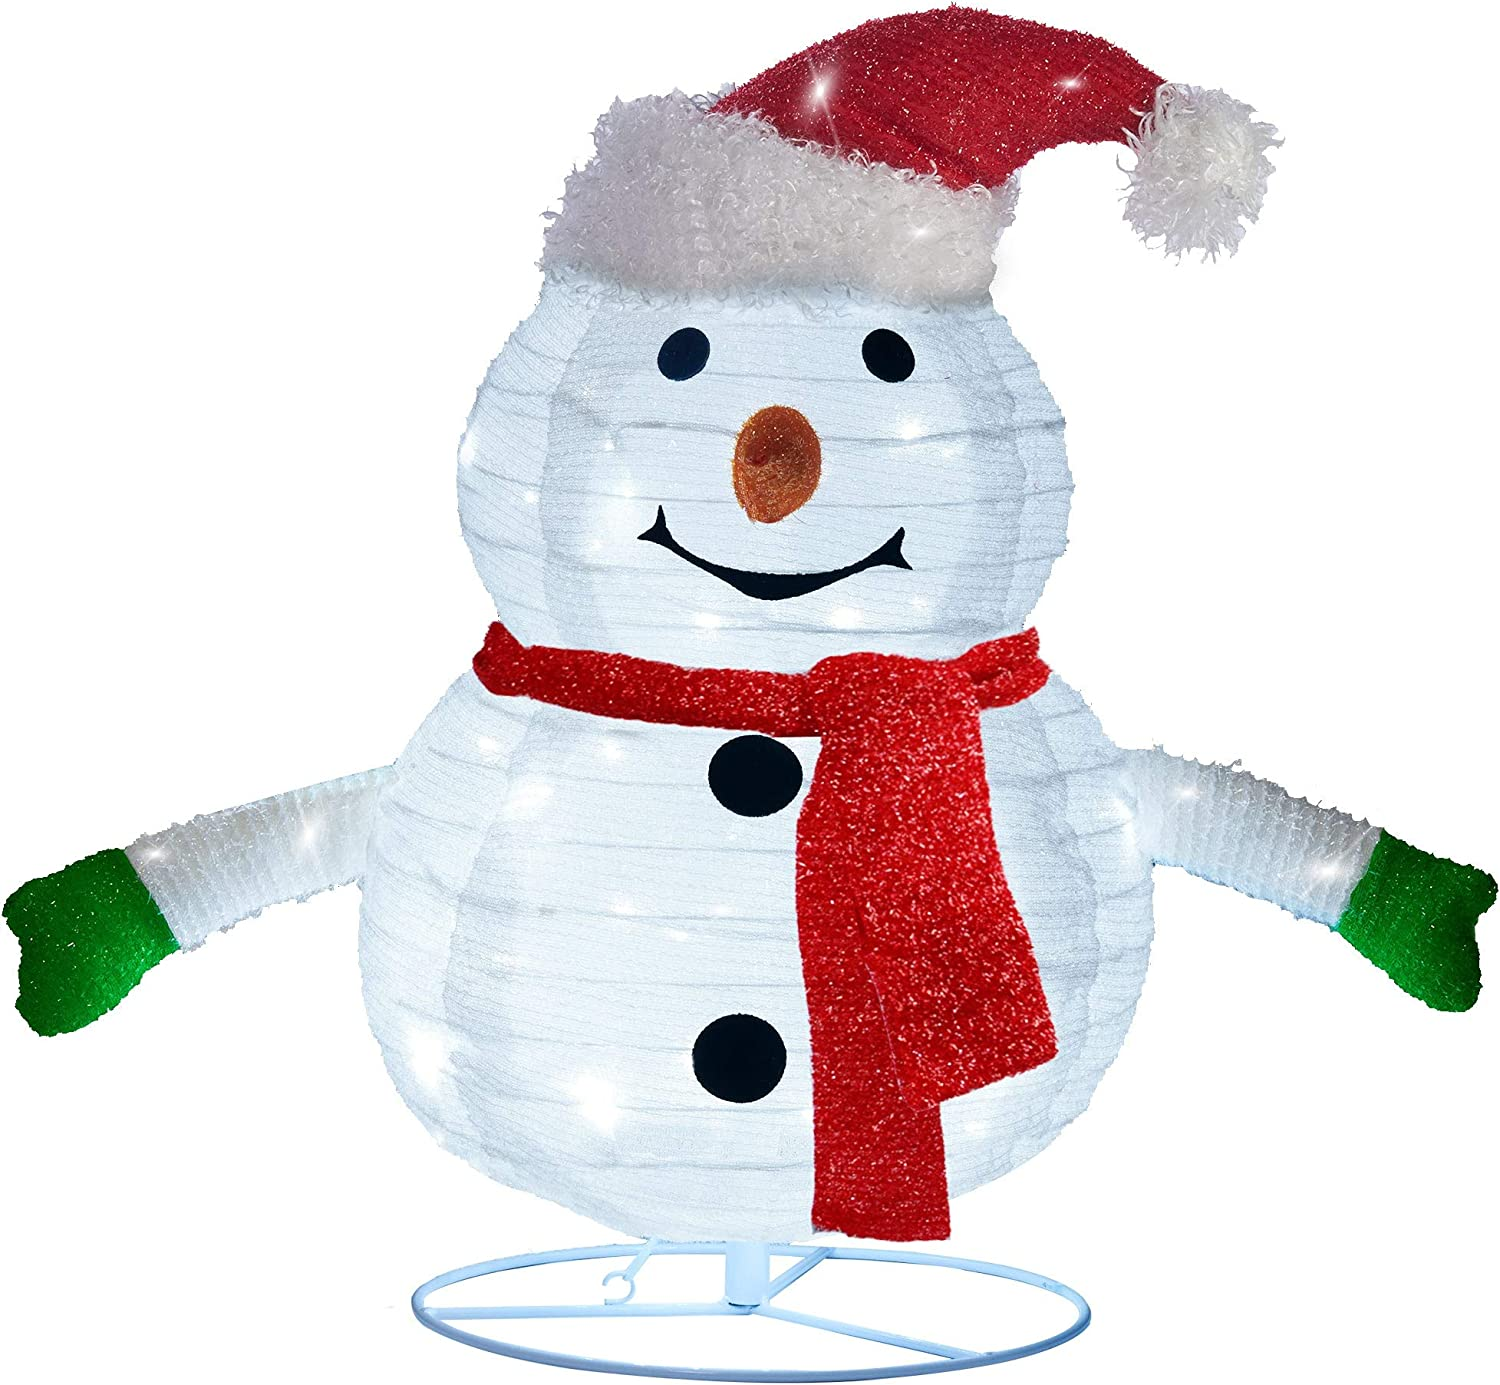 Twinkle Star 2FT Lighted Pop Up Christmas Snowman Decorations, Pre-Lit Light Up 48 LED Cool White Lights, Collapsible Easily Metal Stand Easy-Assembly Reusable for Holiday Xmas Indoor Outdoor Decor